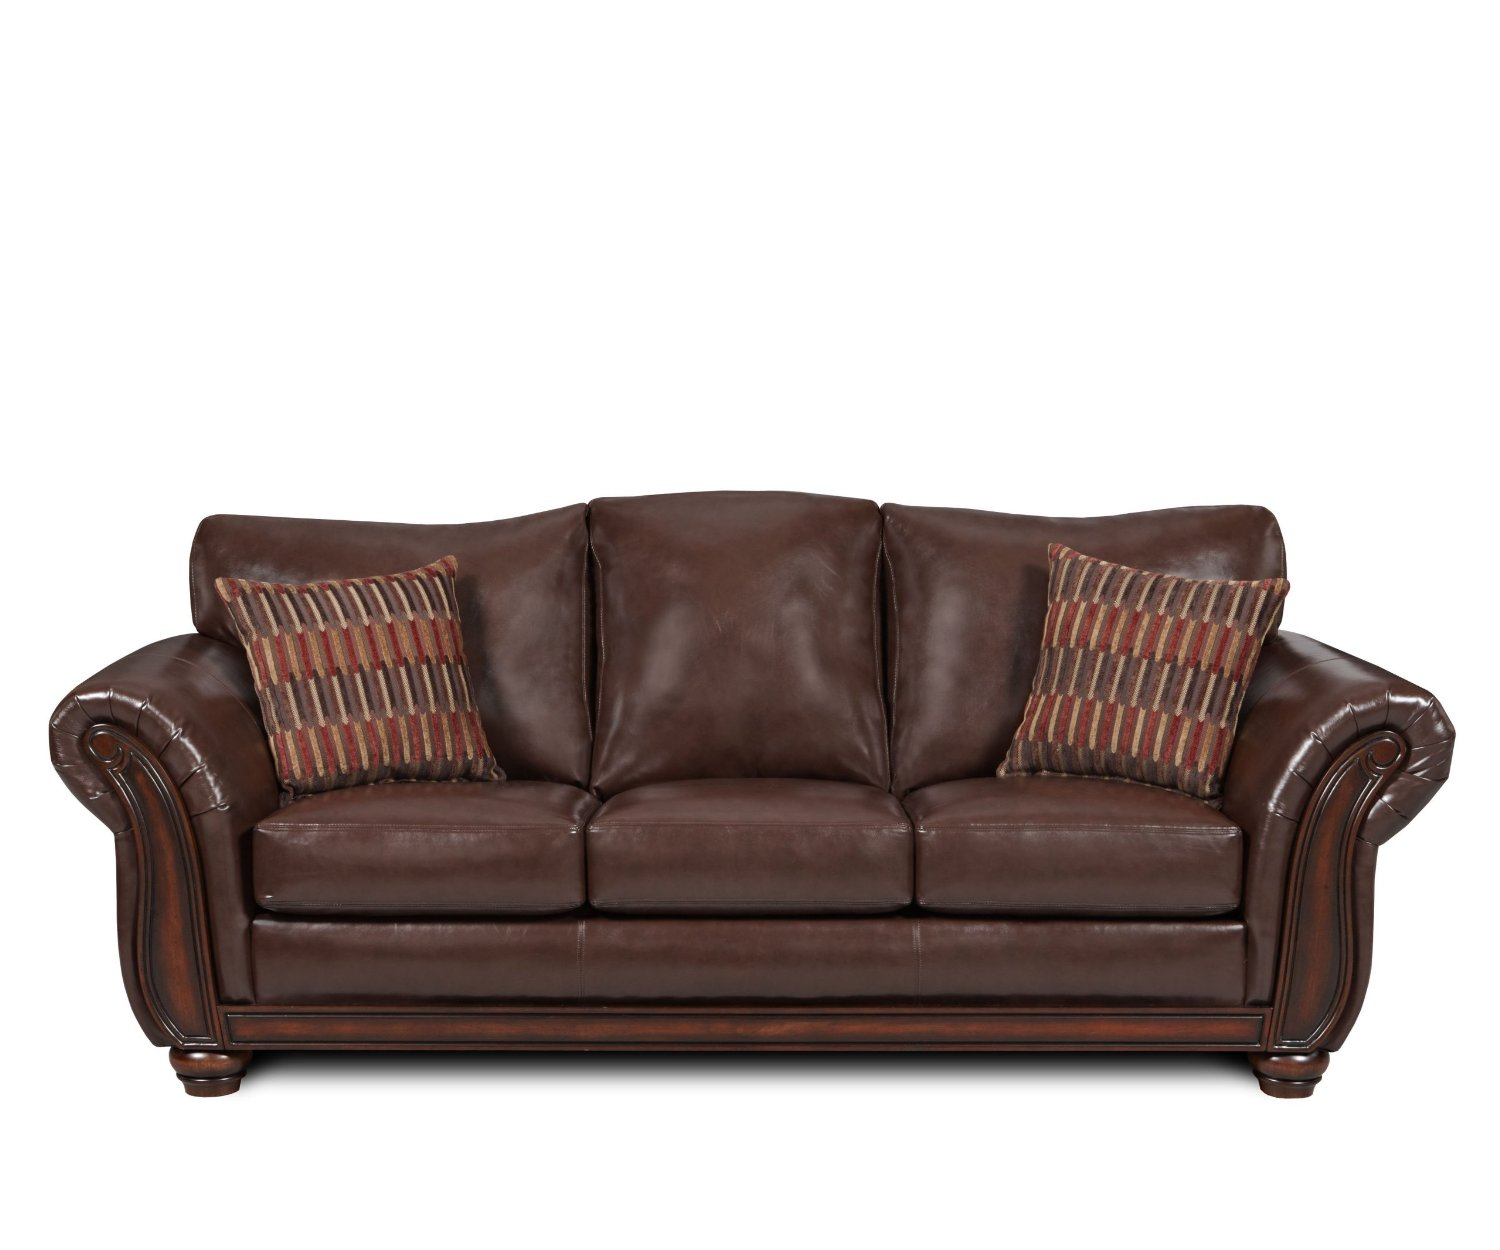 Leather Sofa Chair Leather Couch Furniture Guide Leather Sofa Org